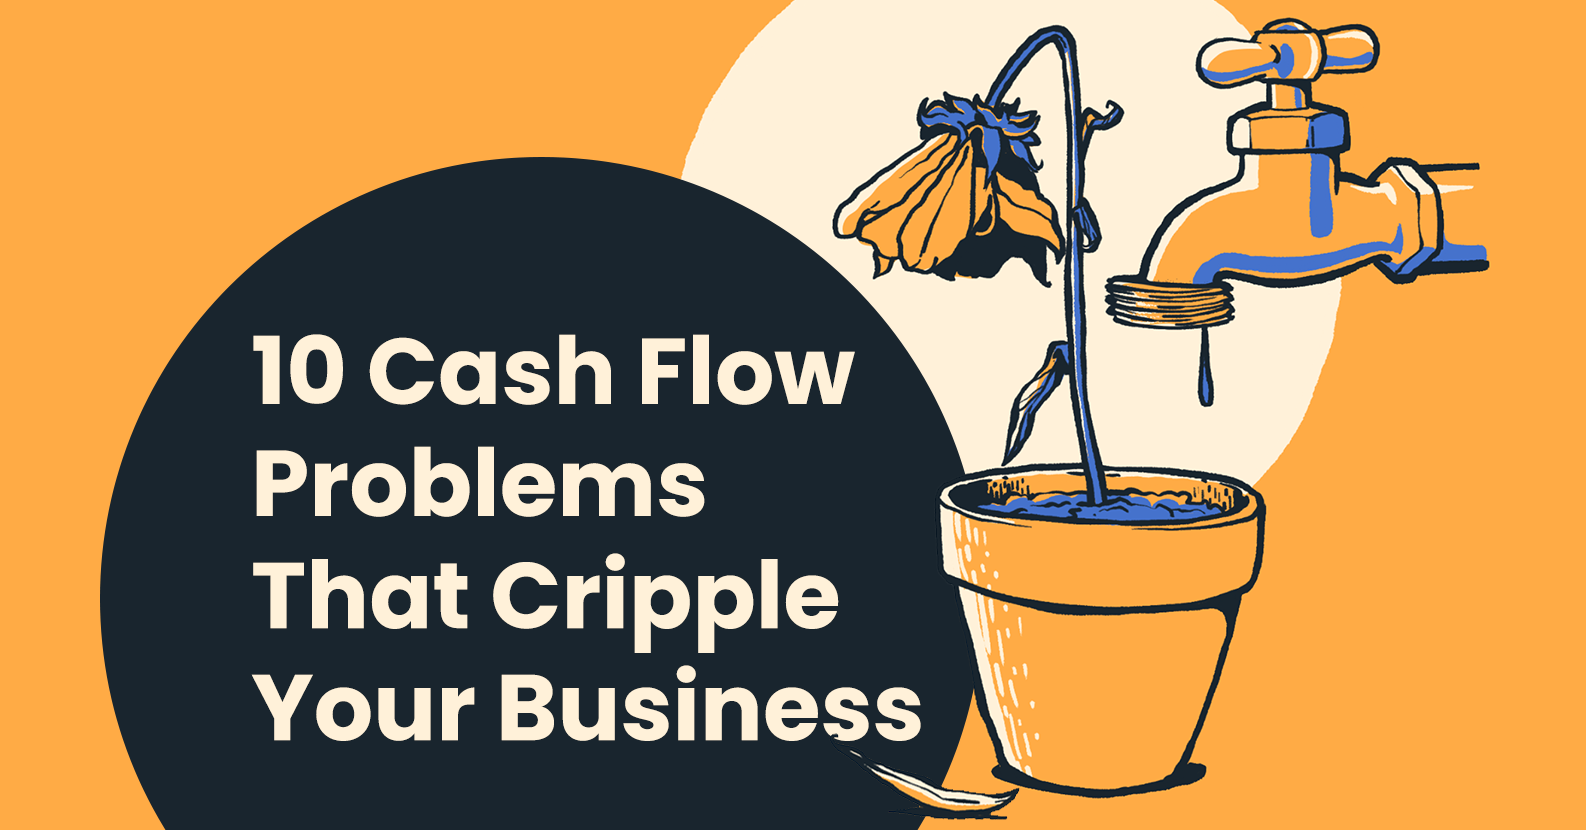 10 Cash-Flow Problems That Cripple Your Business & How to Solve Them